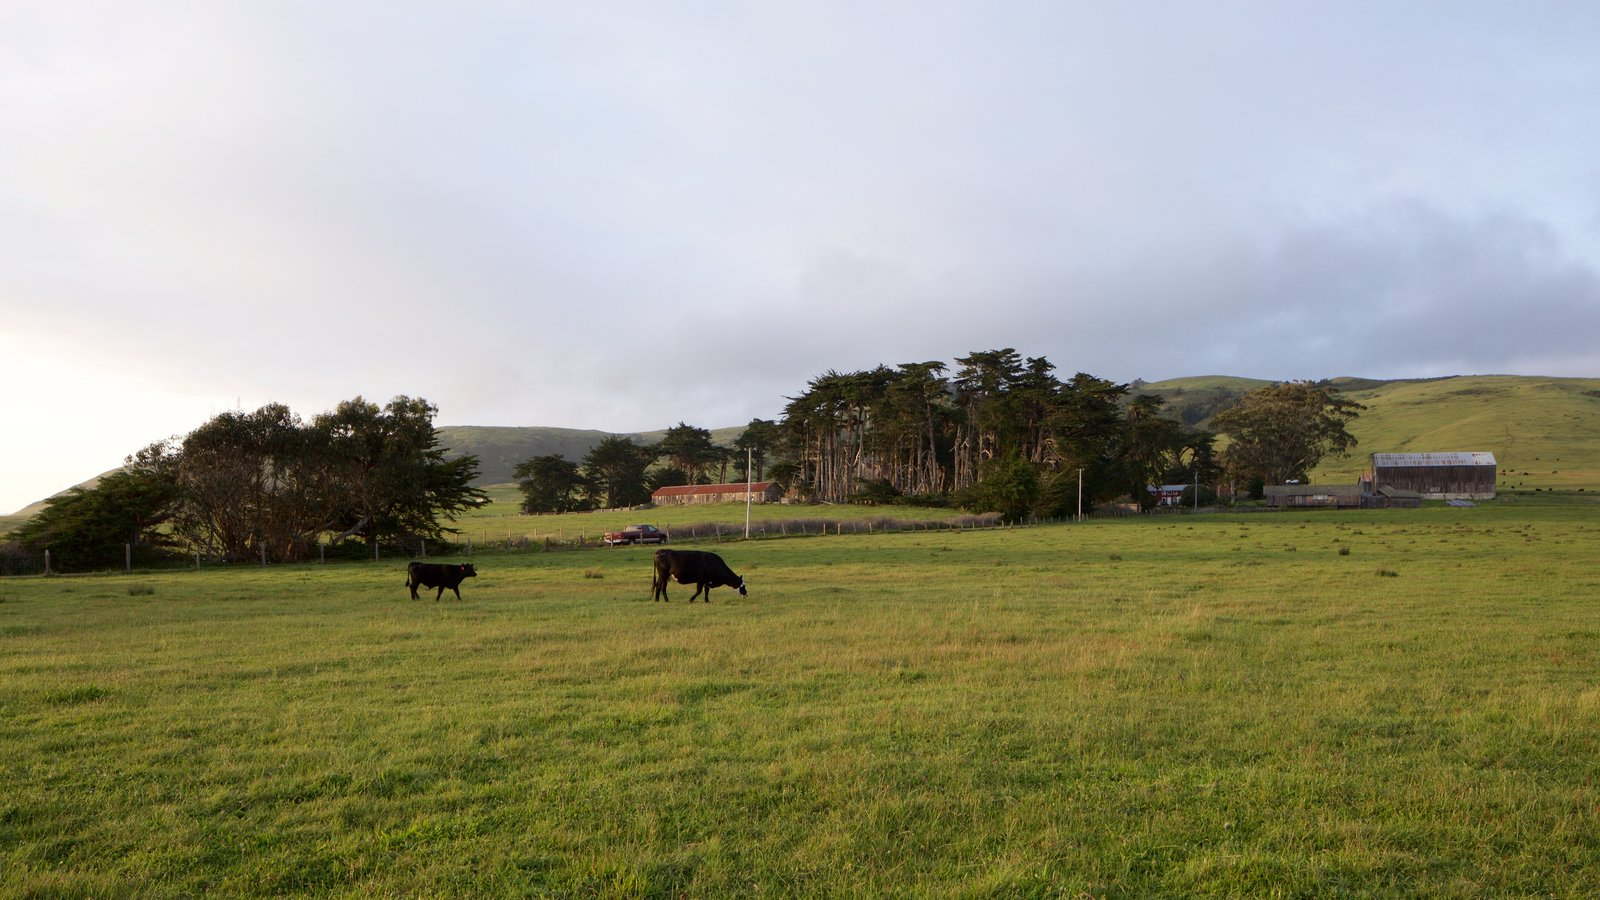 Sonoma Valley featuring tranquil scenes, land animals and a sunset